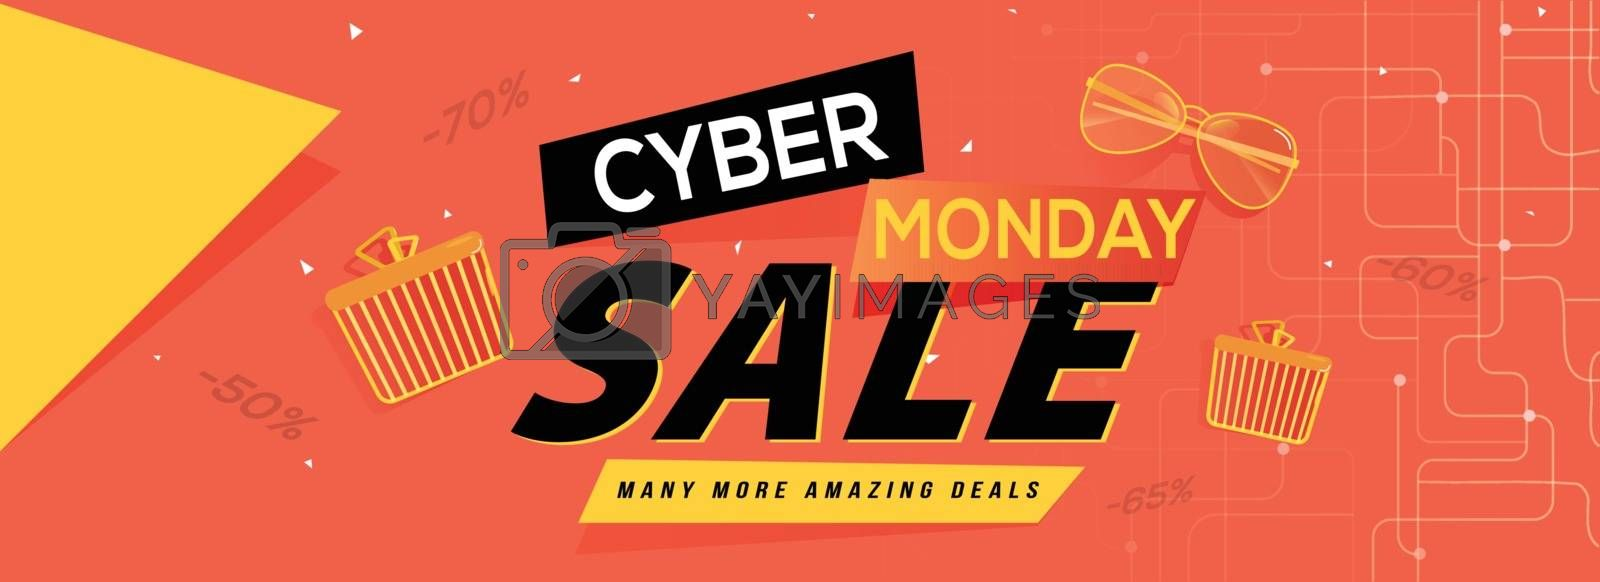 Cyber Monday Sale banner or header design with exclusive discount offer and shopping elements.